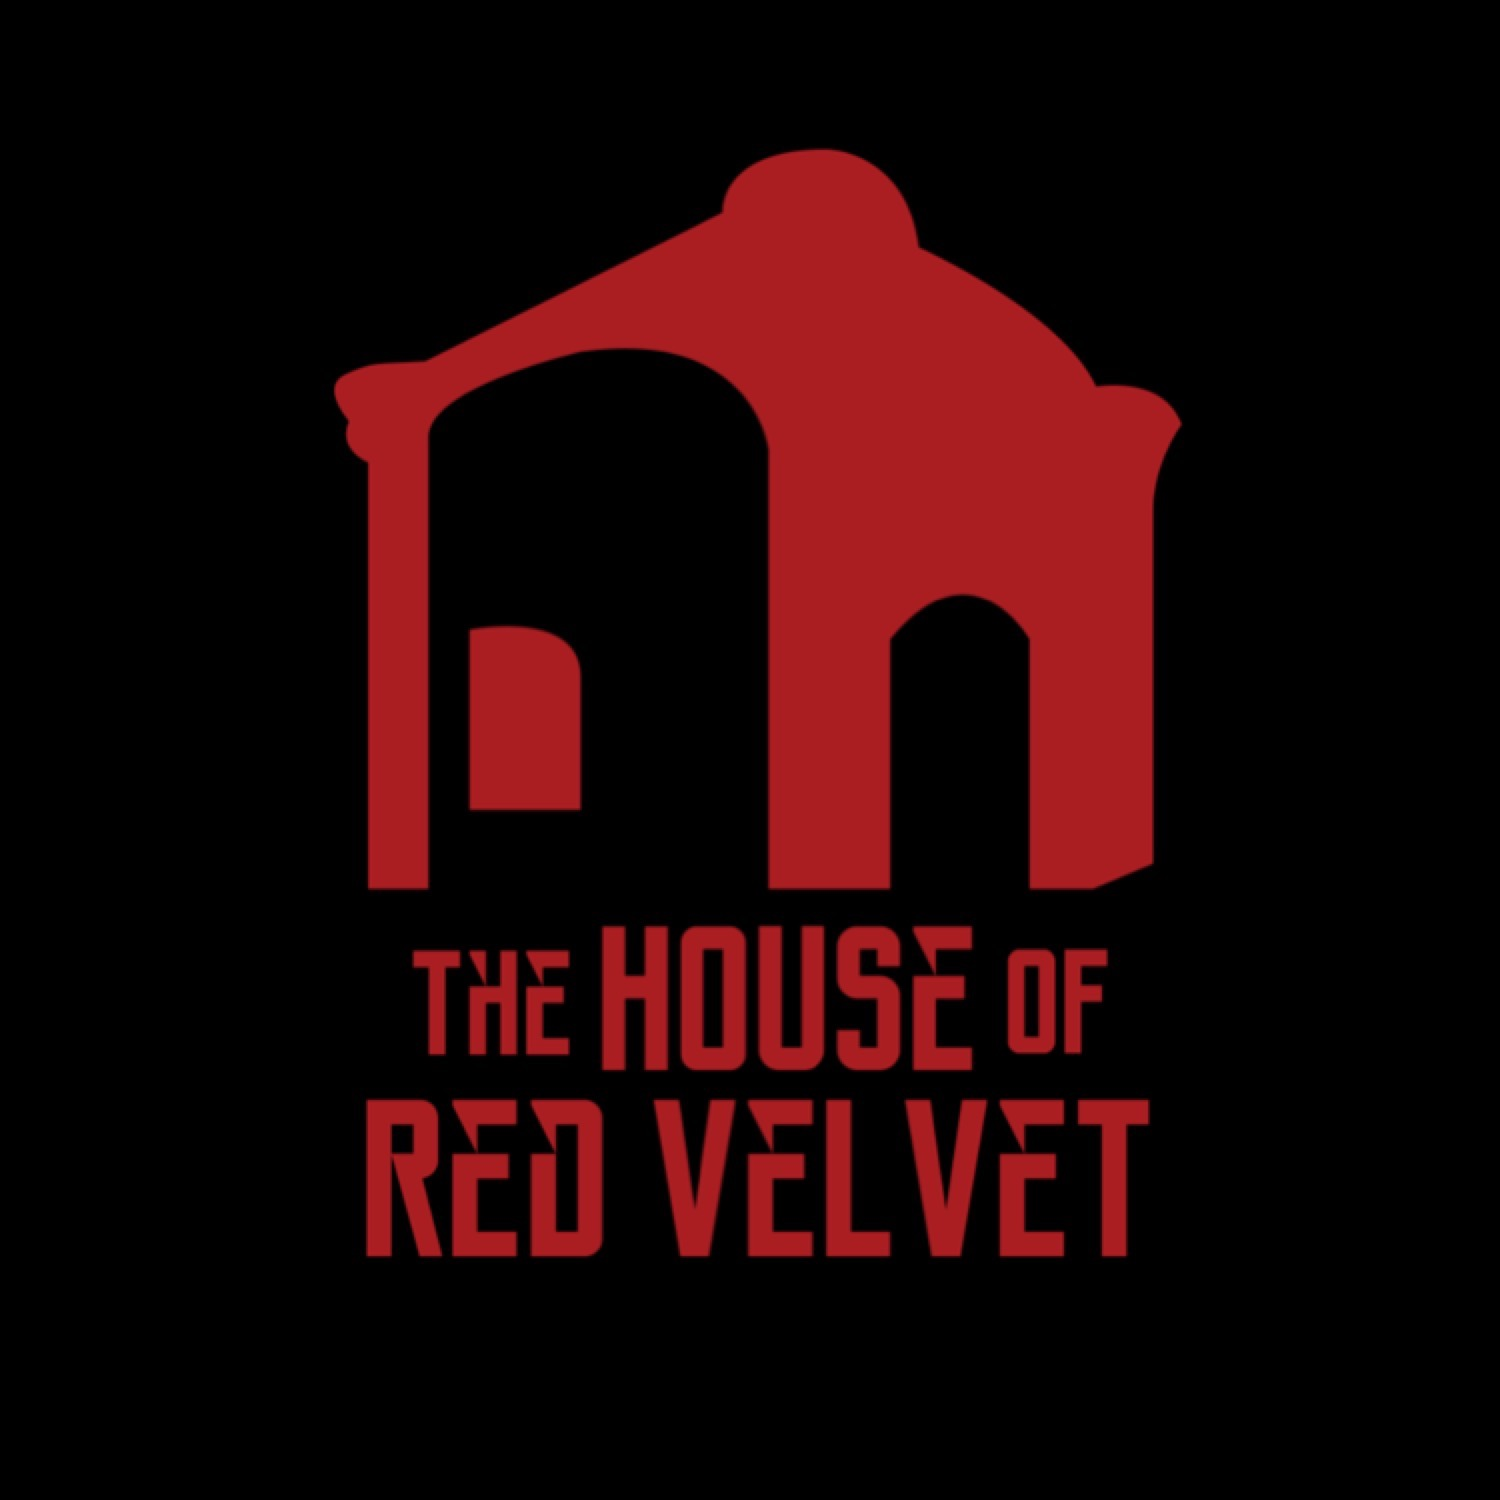 The House of Red Velvet